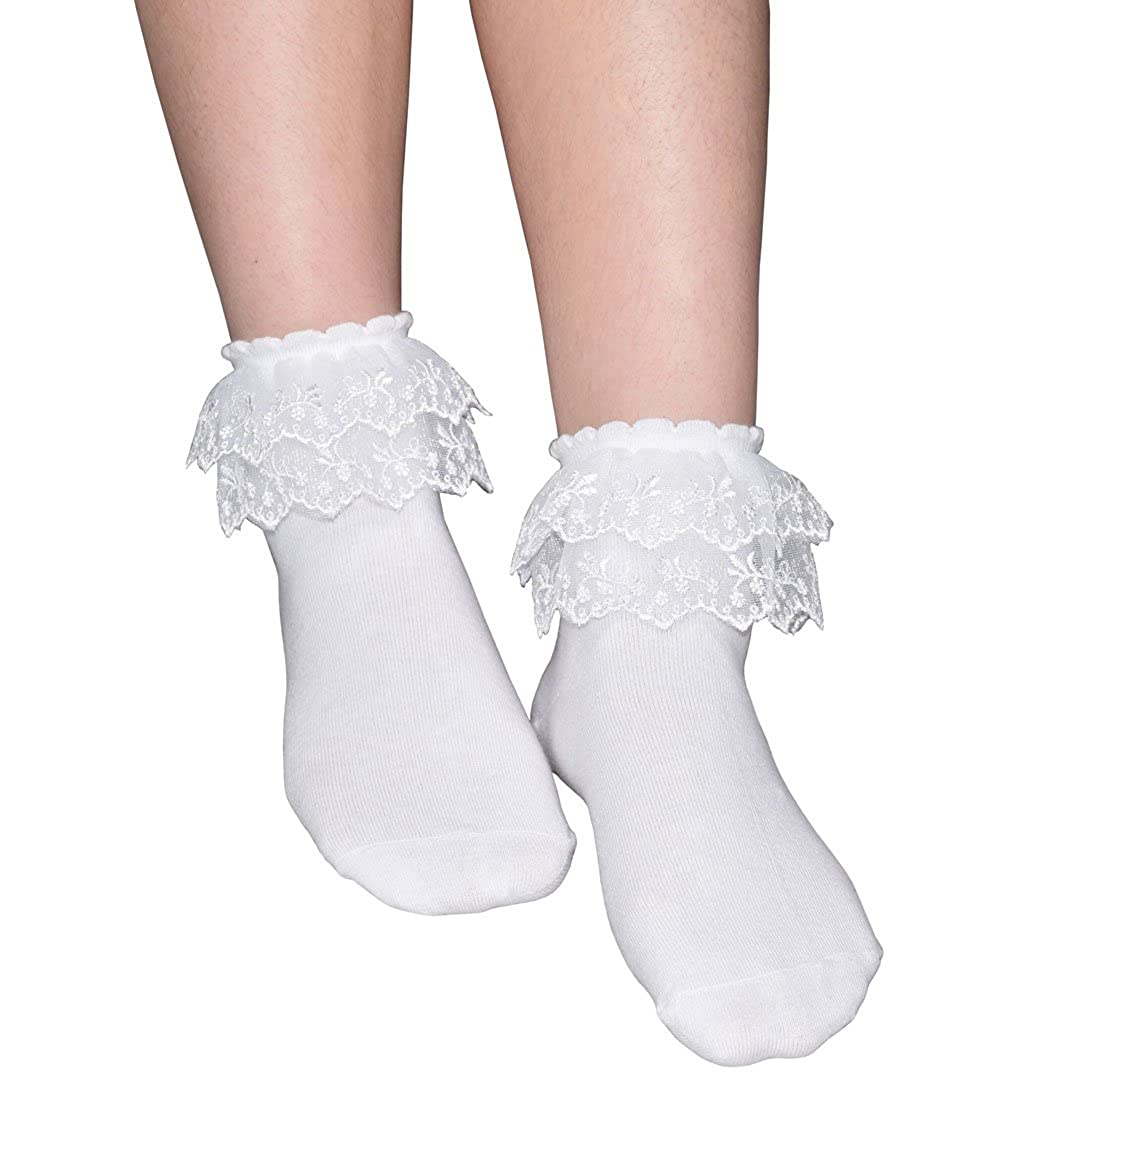 reasonably priced authentic quality new arrival Women's Solid Color Lace Ruffle Frilly Socks, Comfortable Cotton Ankle Lace  Socks, Princess Socks, B013